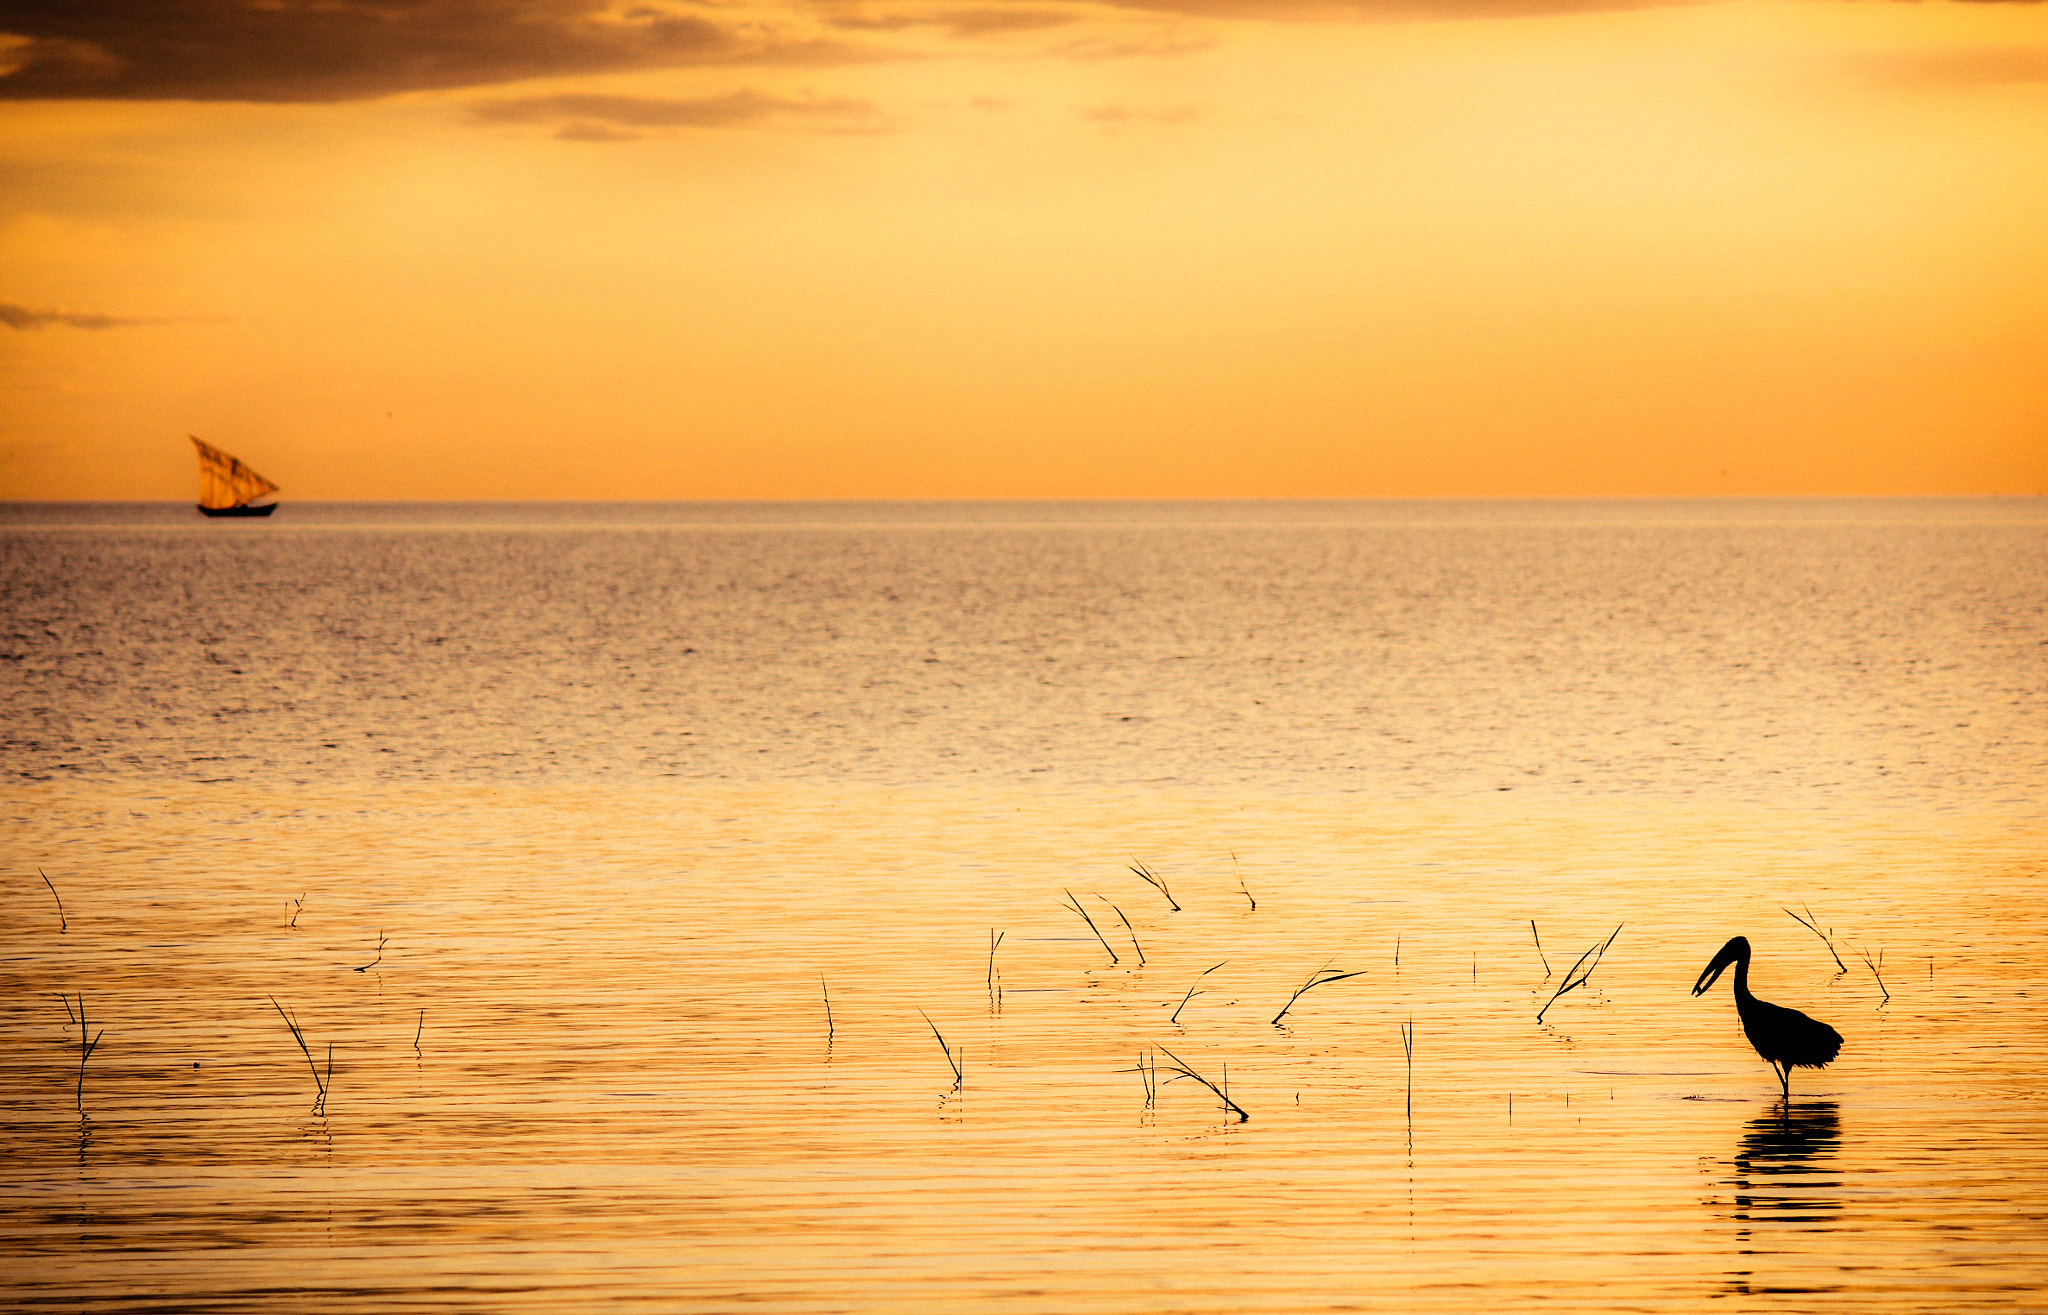 Photograph Silhouette waters by Heinrich Stofberg on 500px